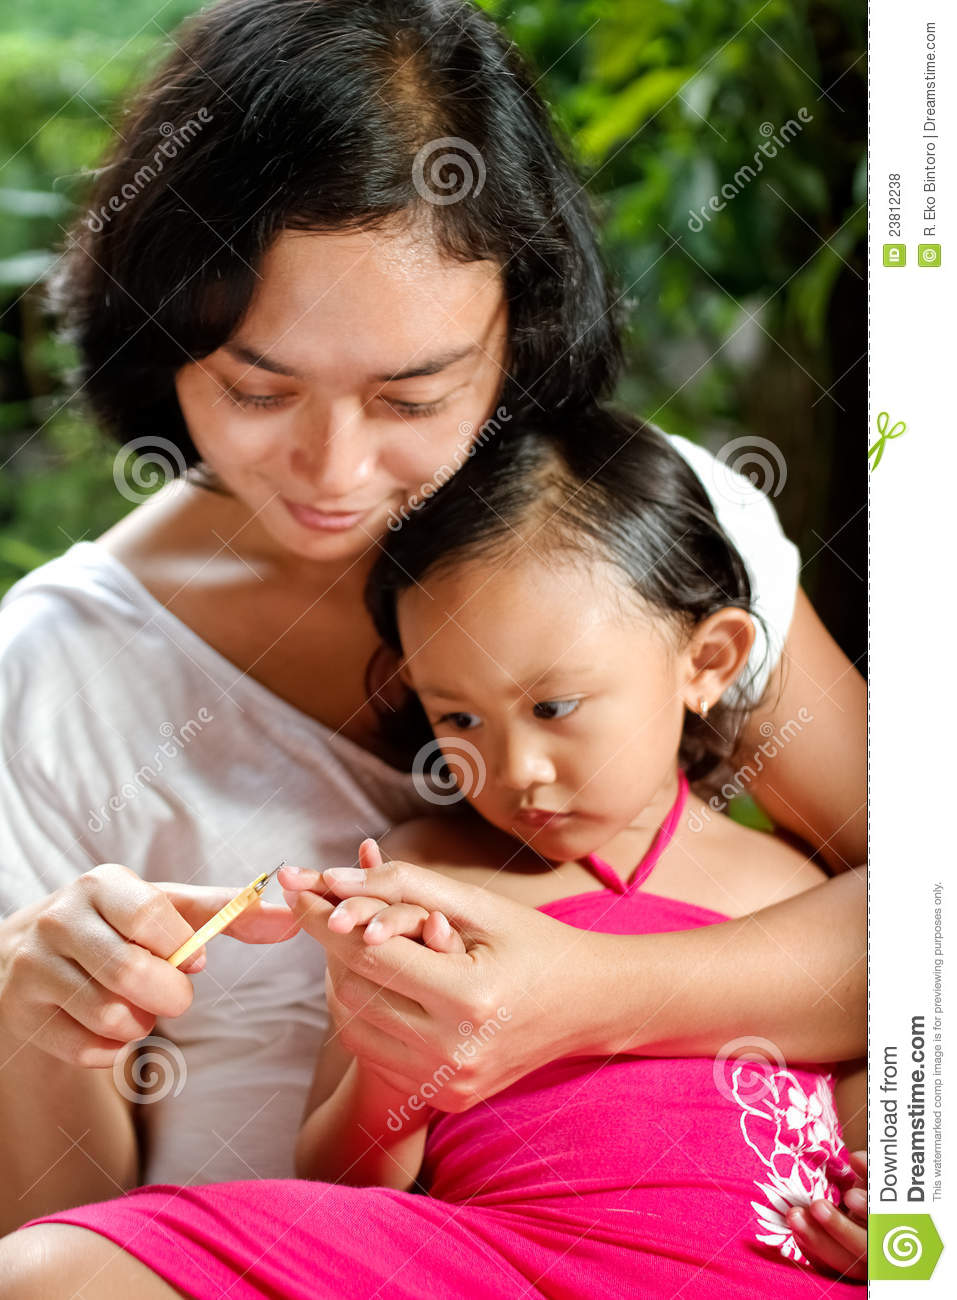 Mother Cutting Fingernail Of A Child Stock Photo Image Of Mother Family 23812238